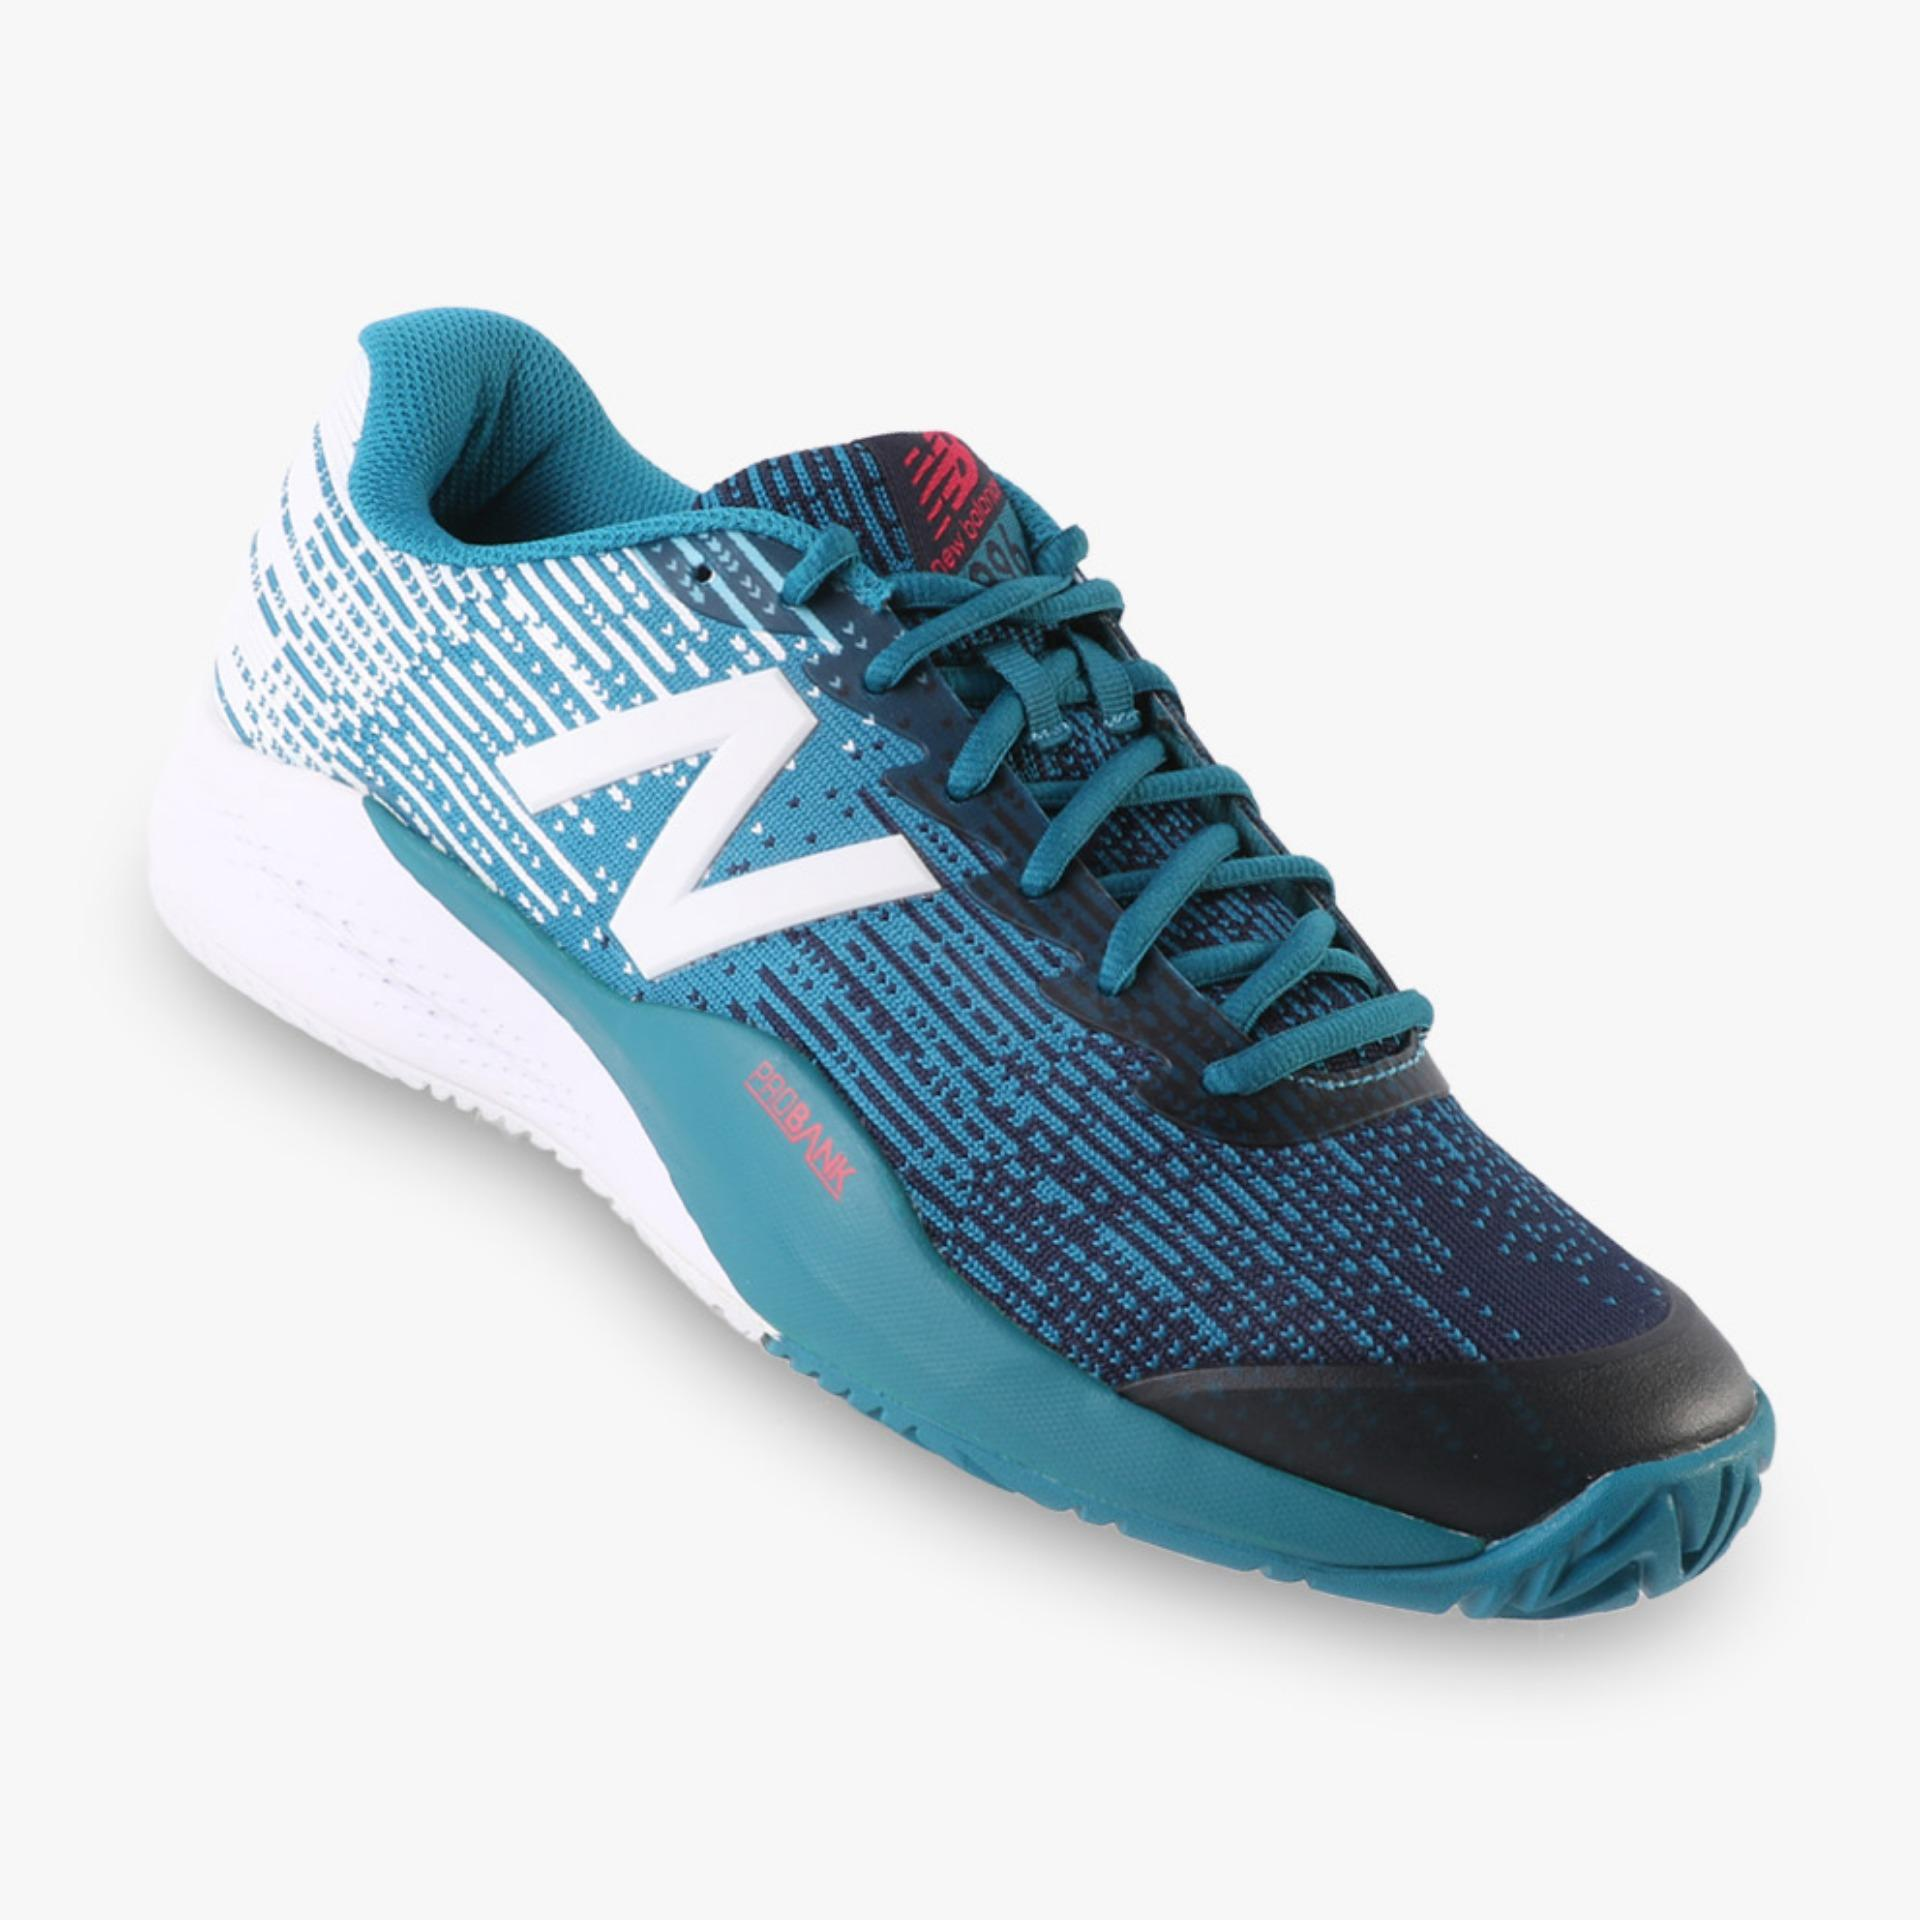 Beli New Balance French Open Men S Tennis Shoes Biru Online Indonesia